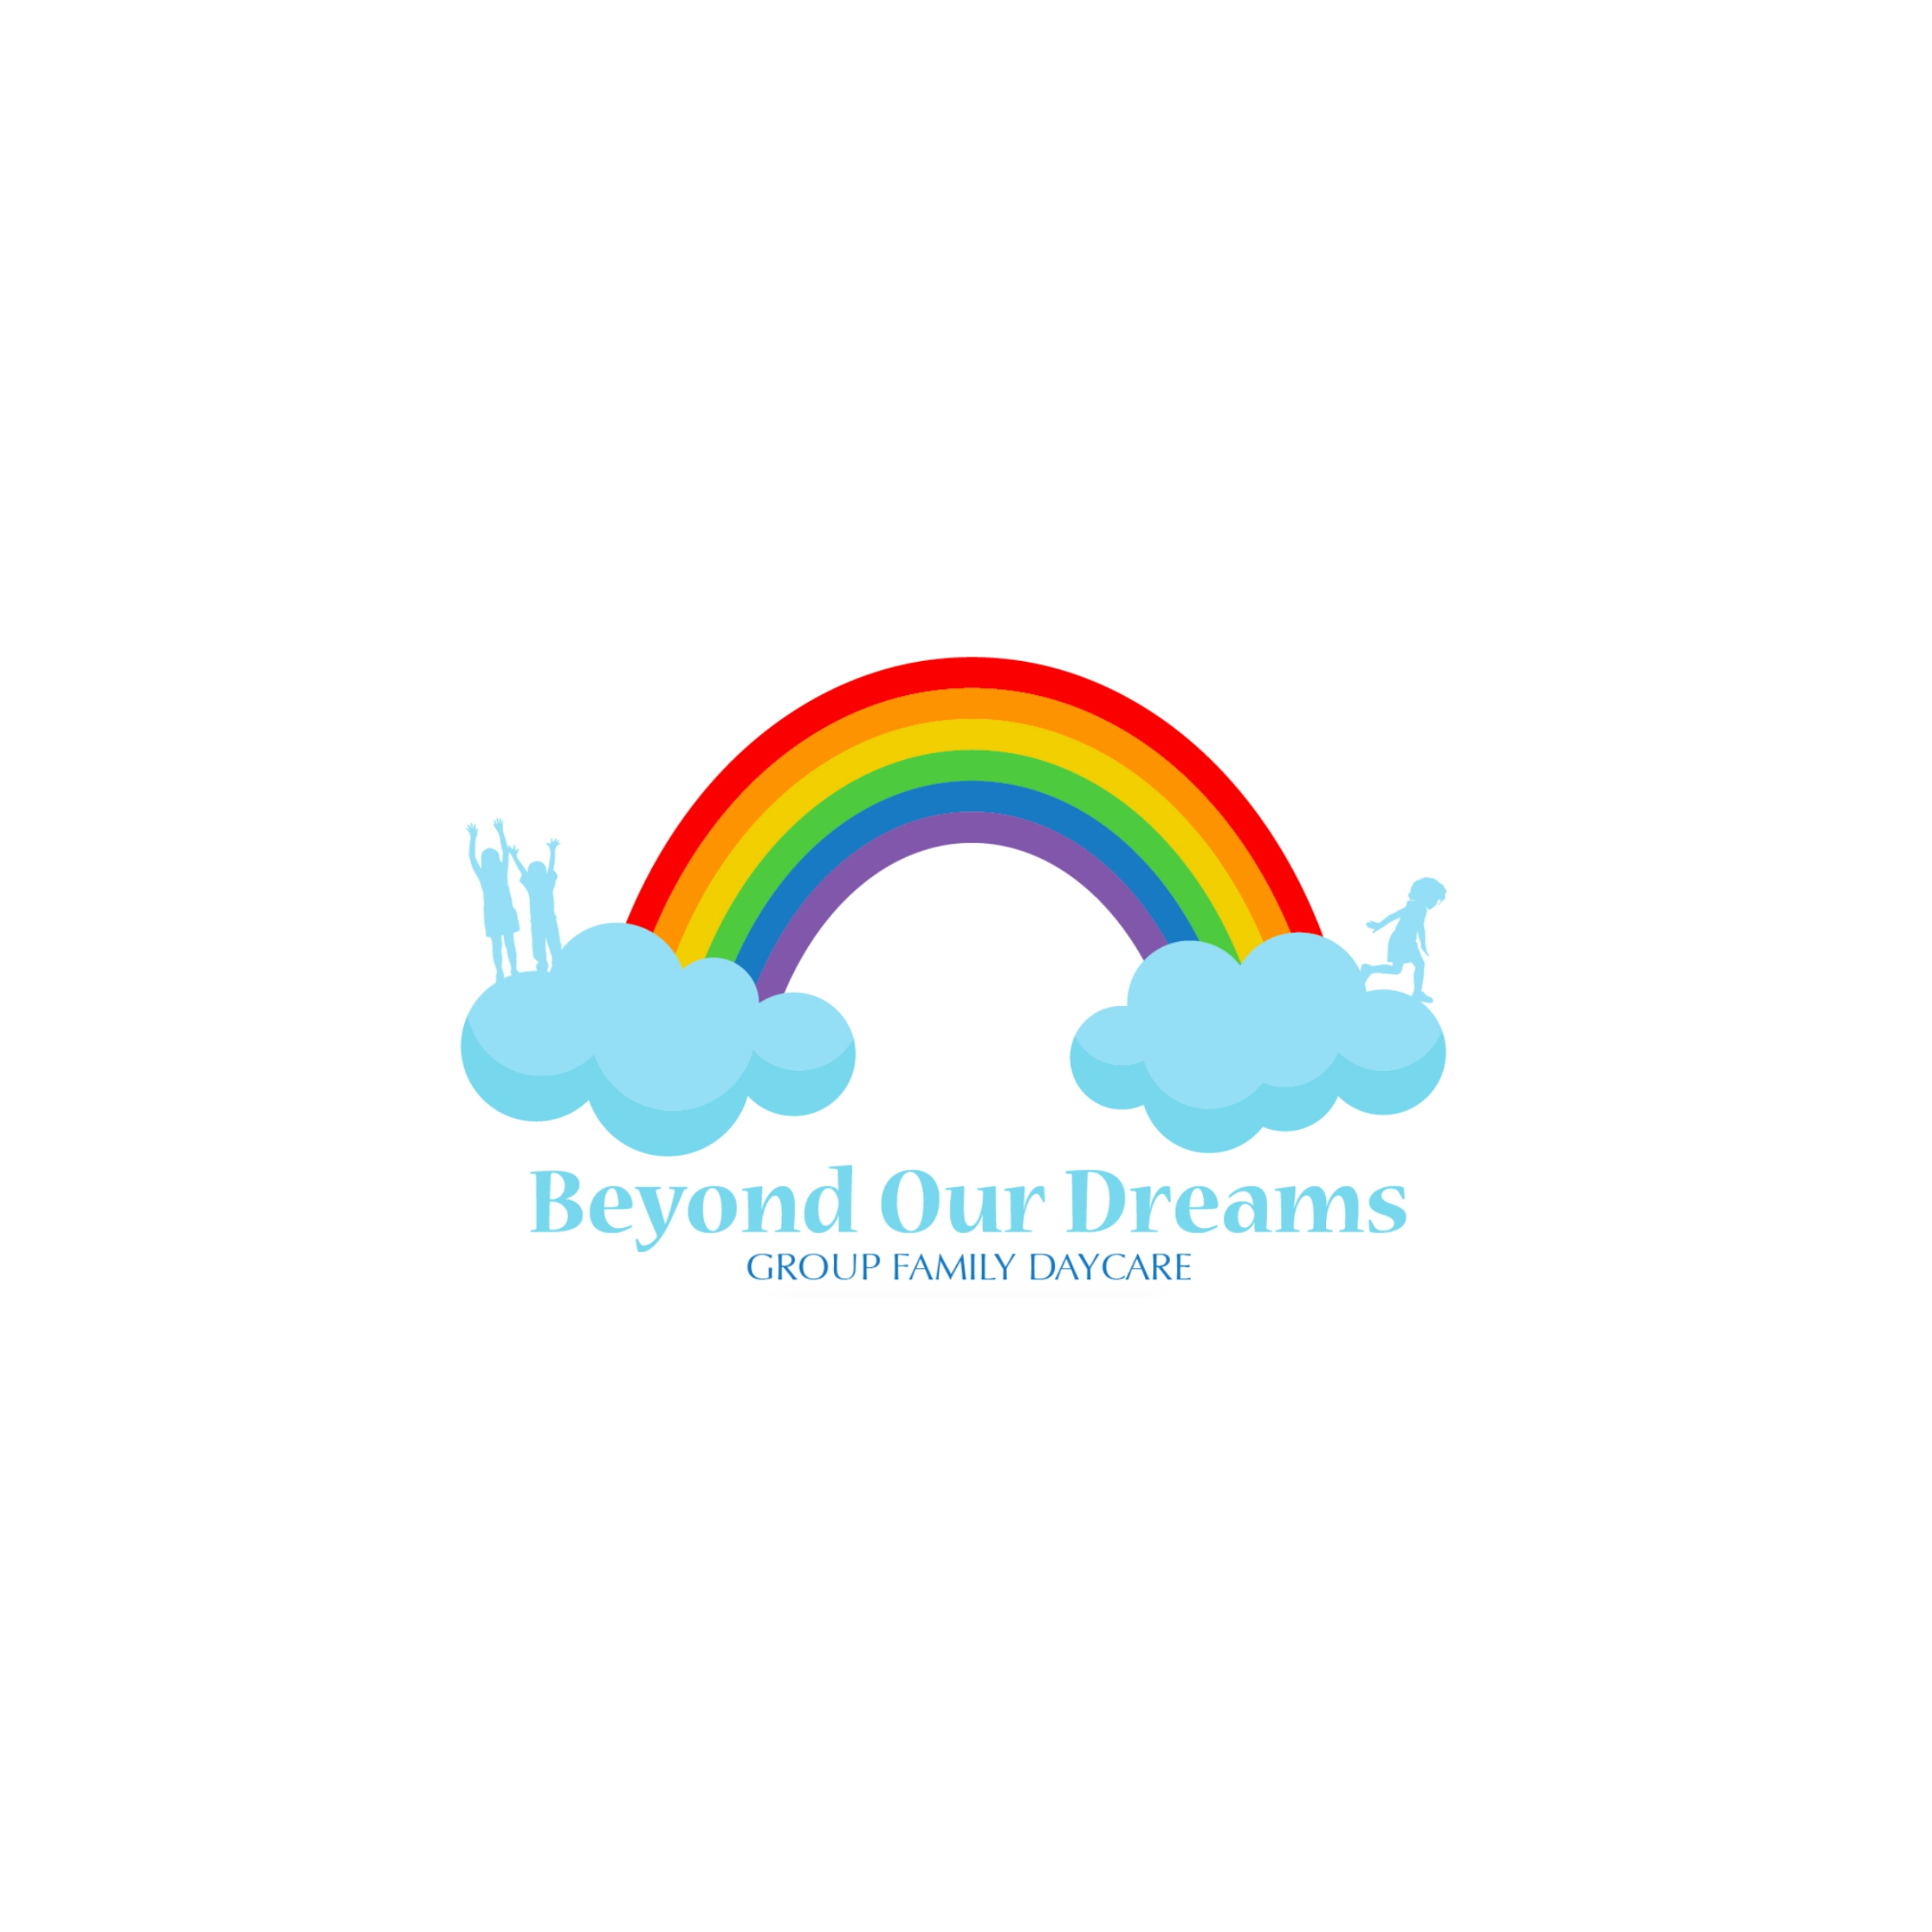 BEYOND OUR DREAMS GROUP FAMILY DAY CARE